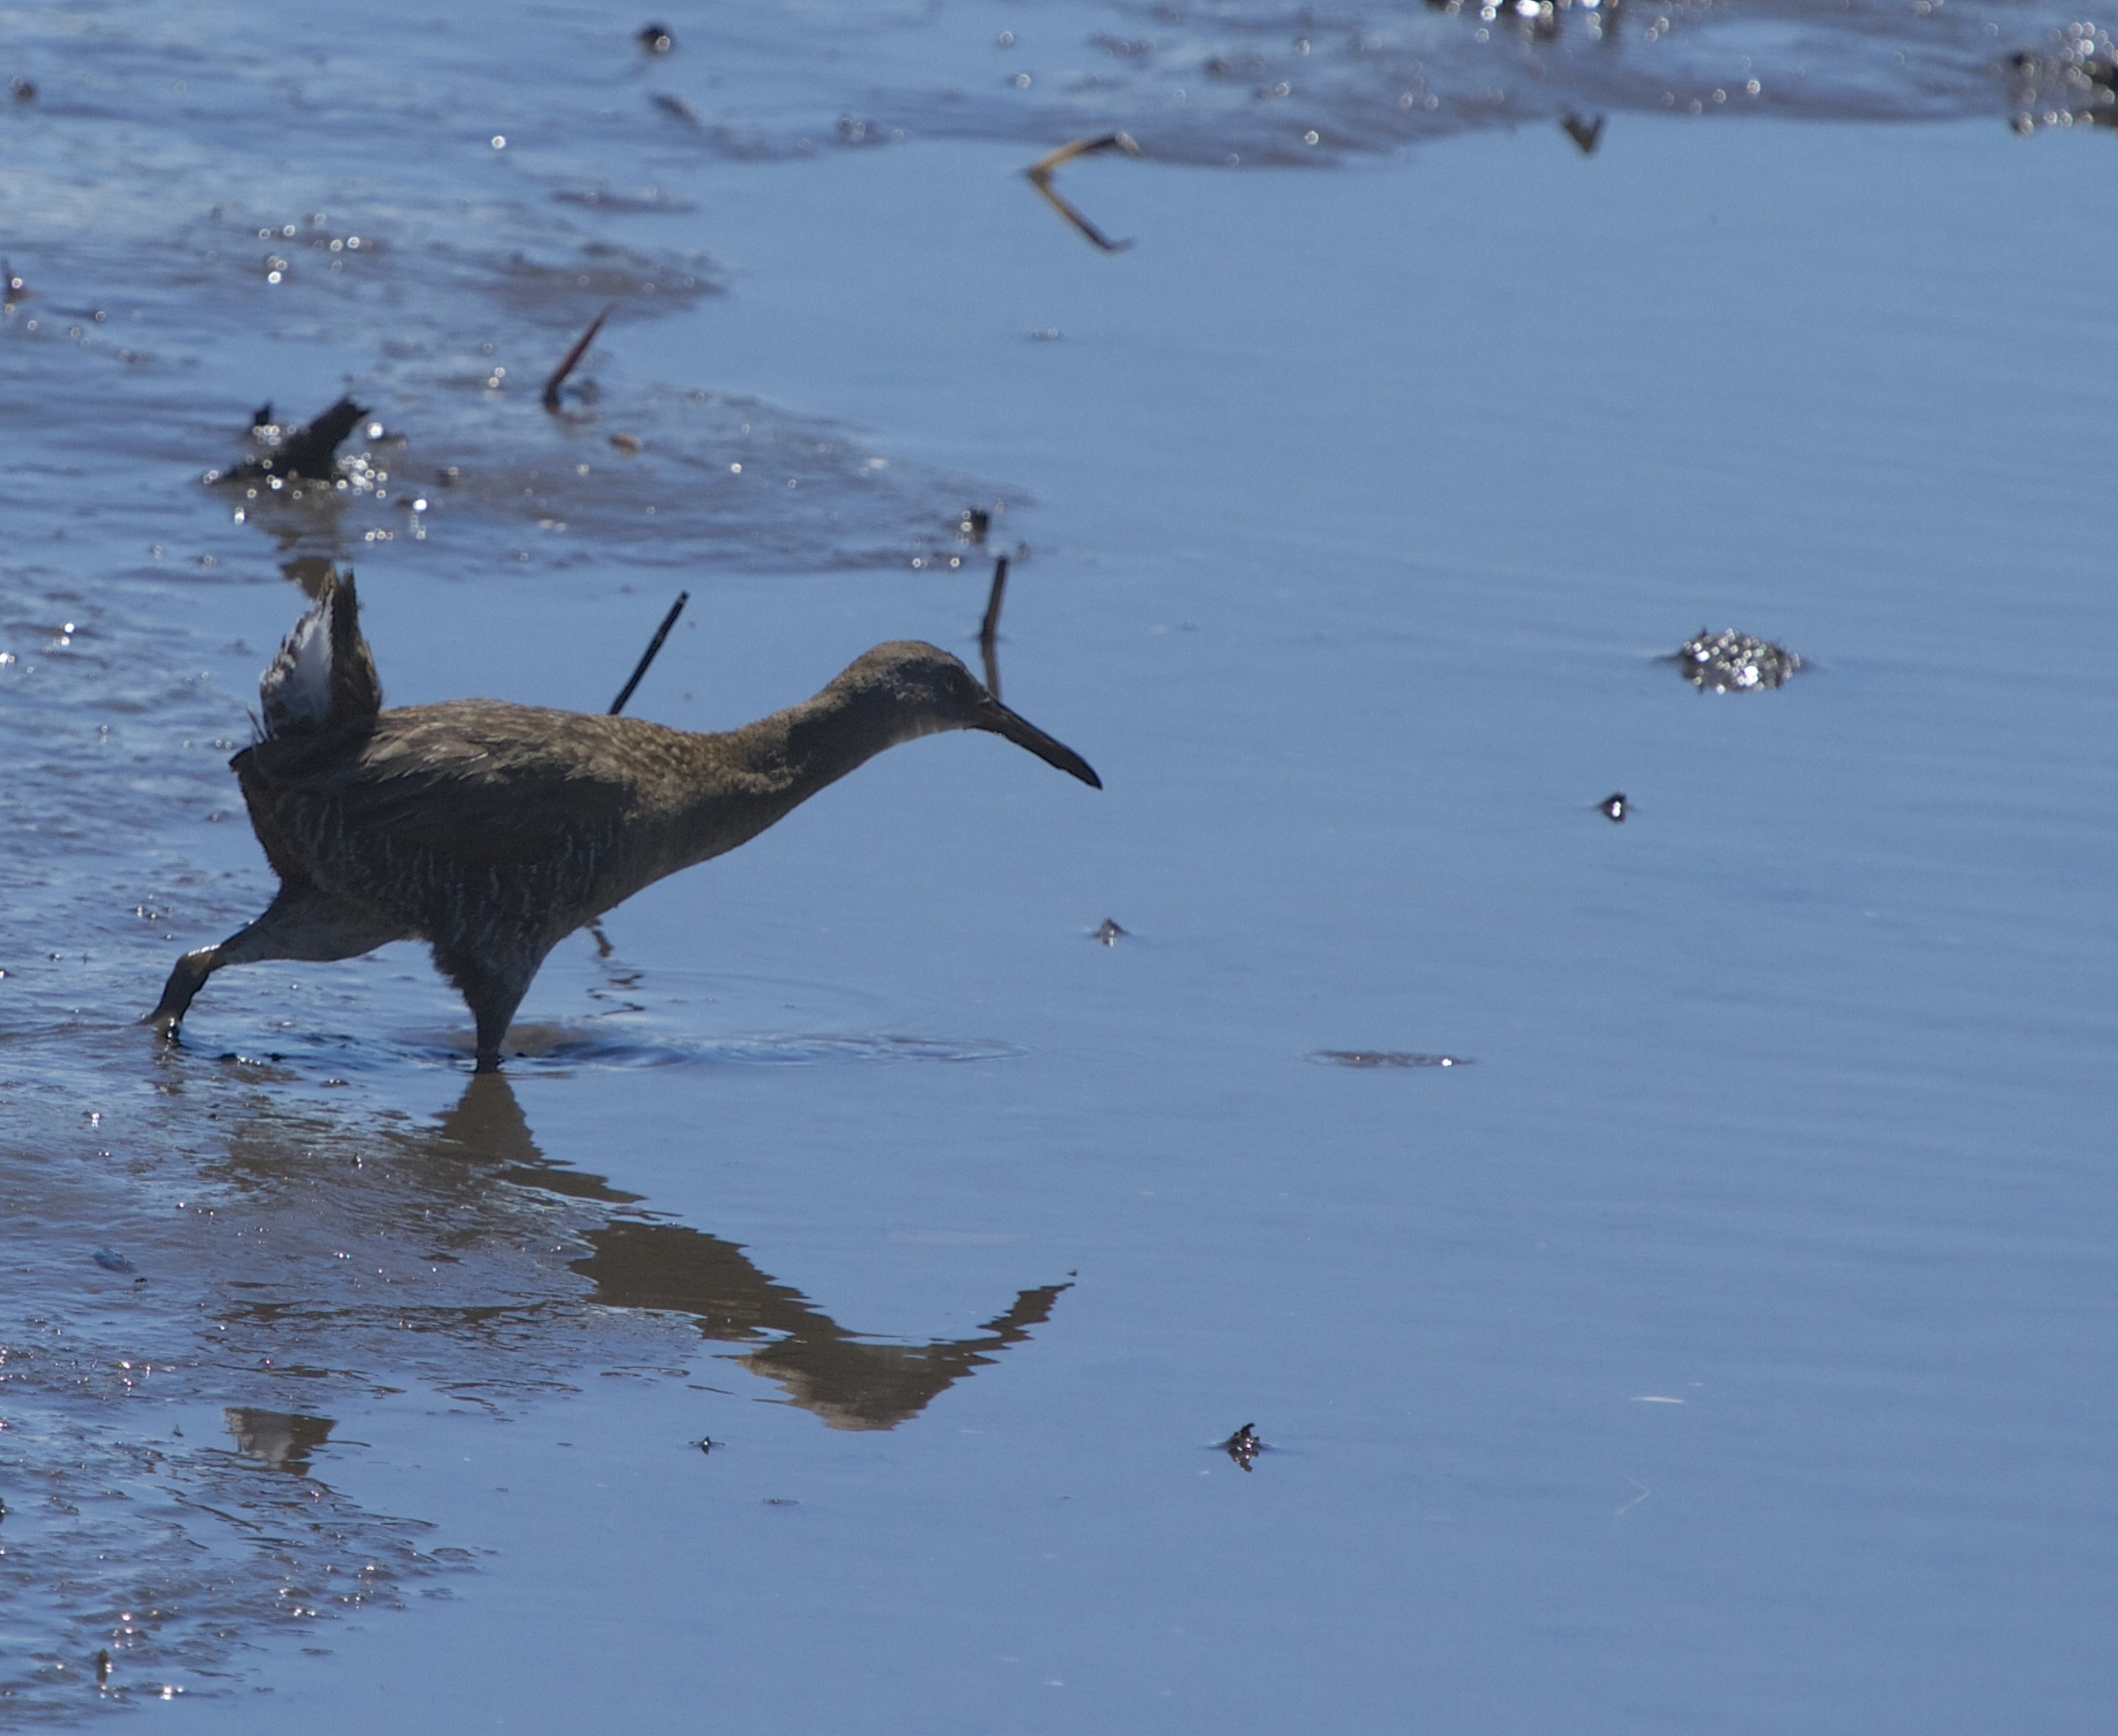 A Clapper Rail (also called mud hens) makes a rare daylight appearance.